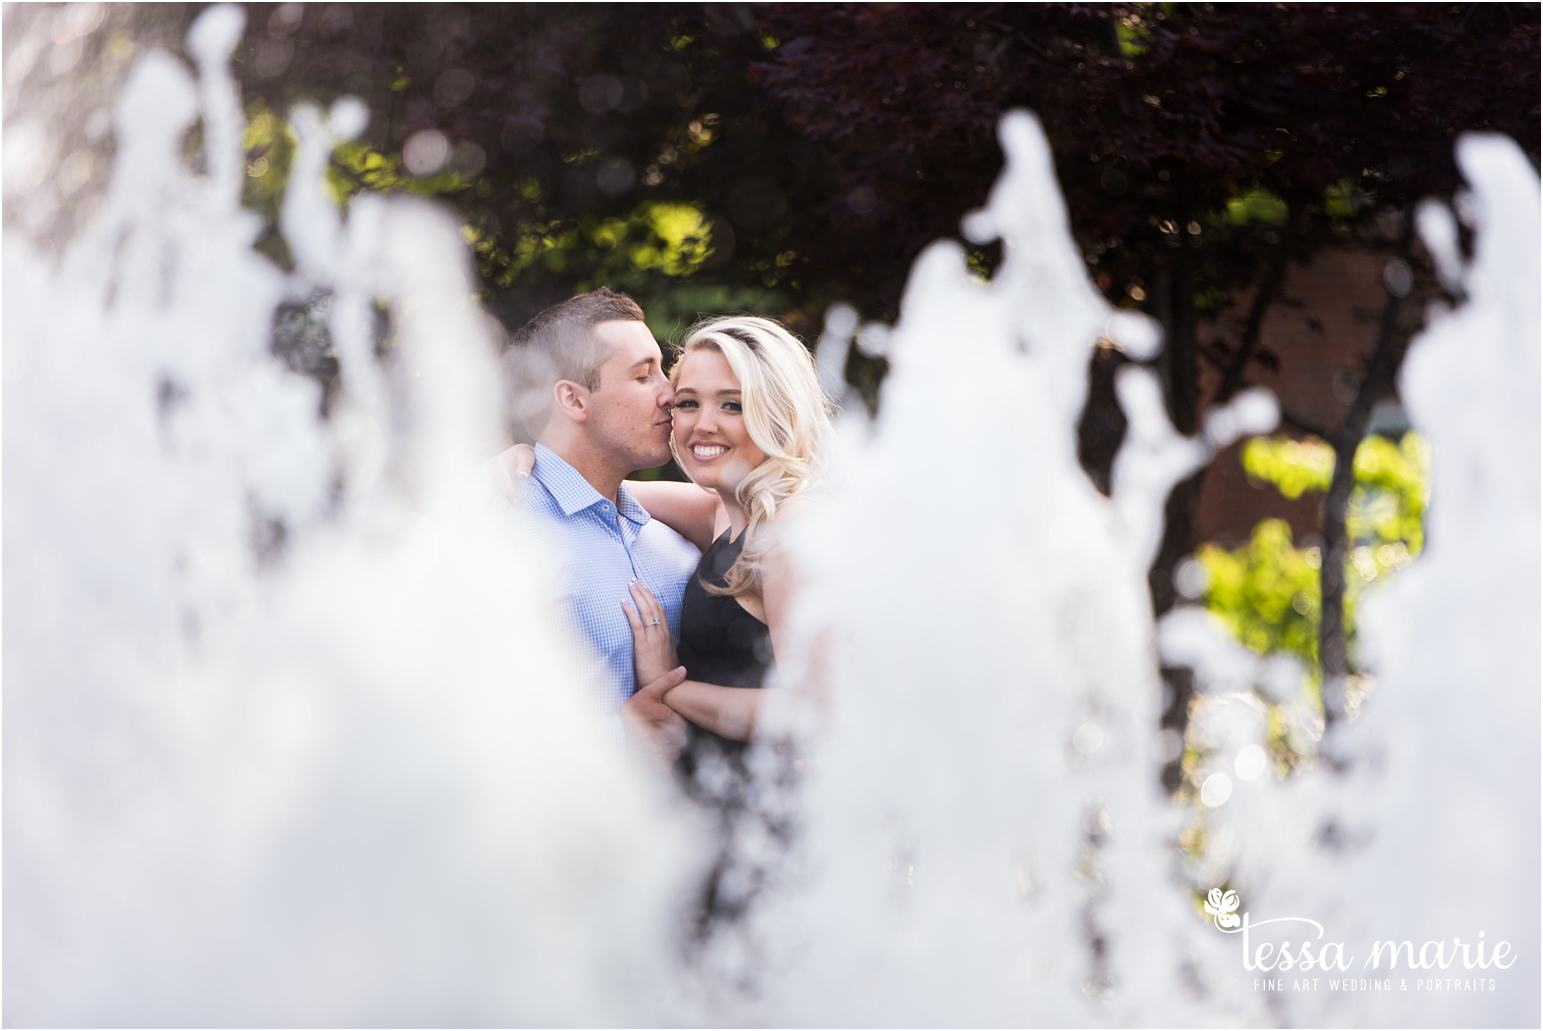 athens_ga_uga_university_of_georgia_engagement_pictures_north_campus_tessa_marie_weddings_athens_wedding_photographer_0054